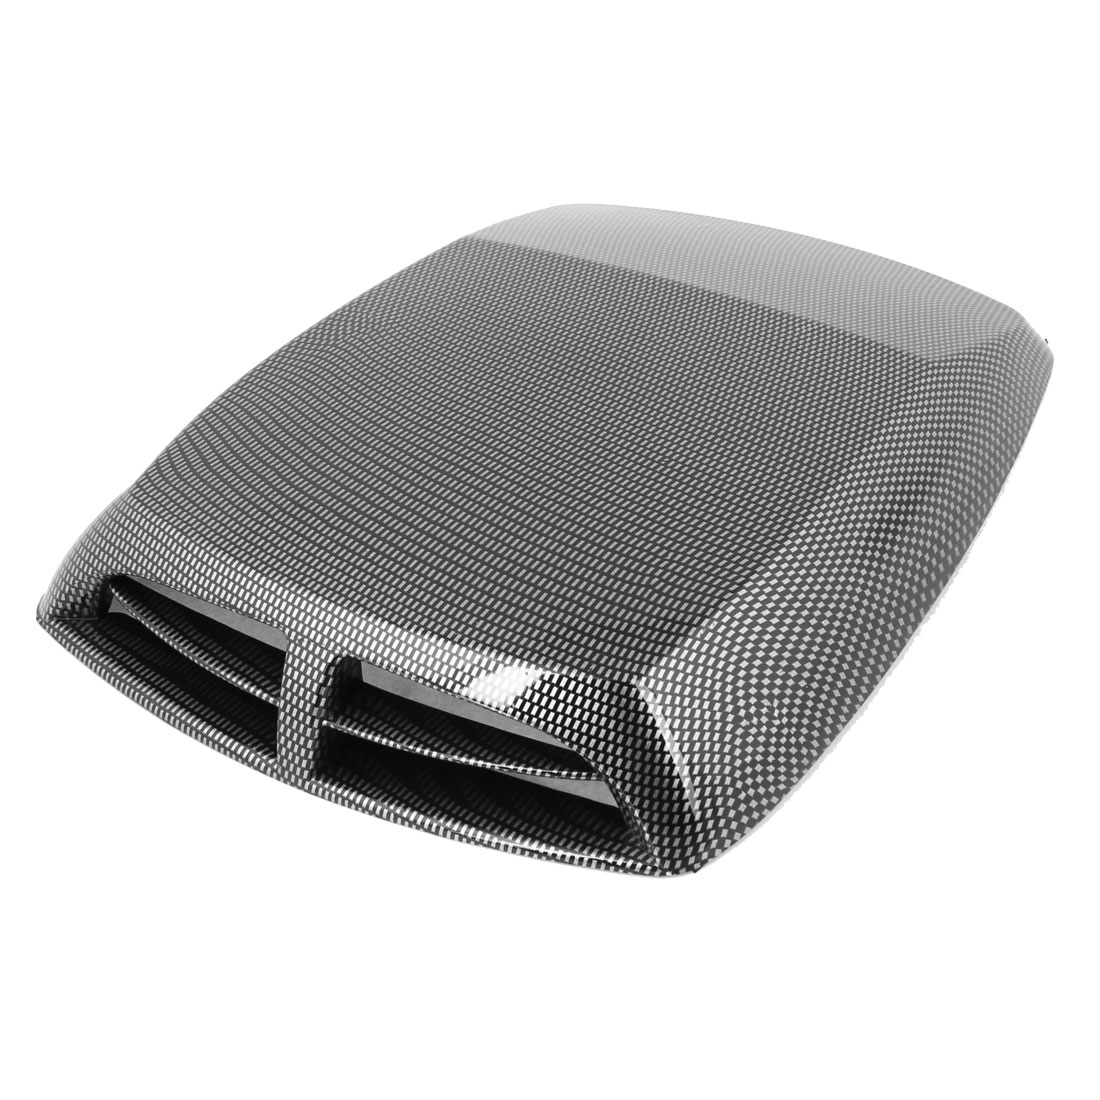 "13"" x 9.8"" Carbon Fiber Pattern Air Scoop Flow Sticker Port Hole Vent for Auto"